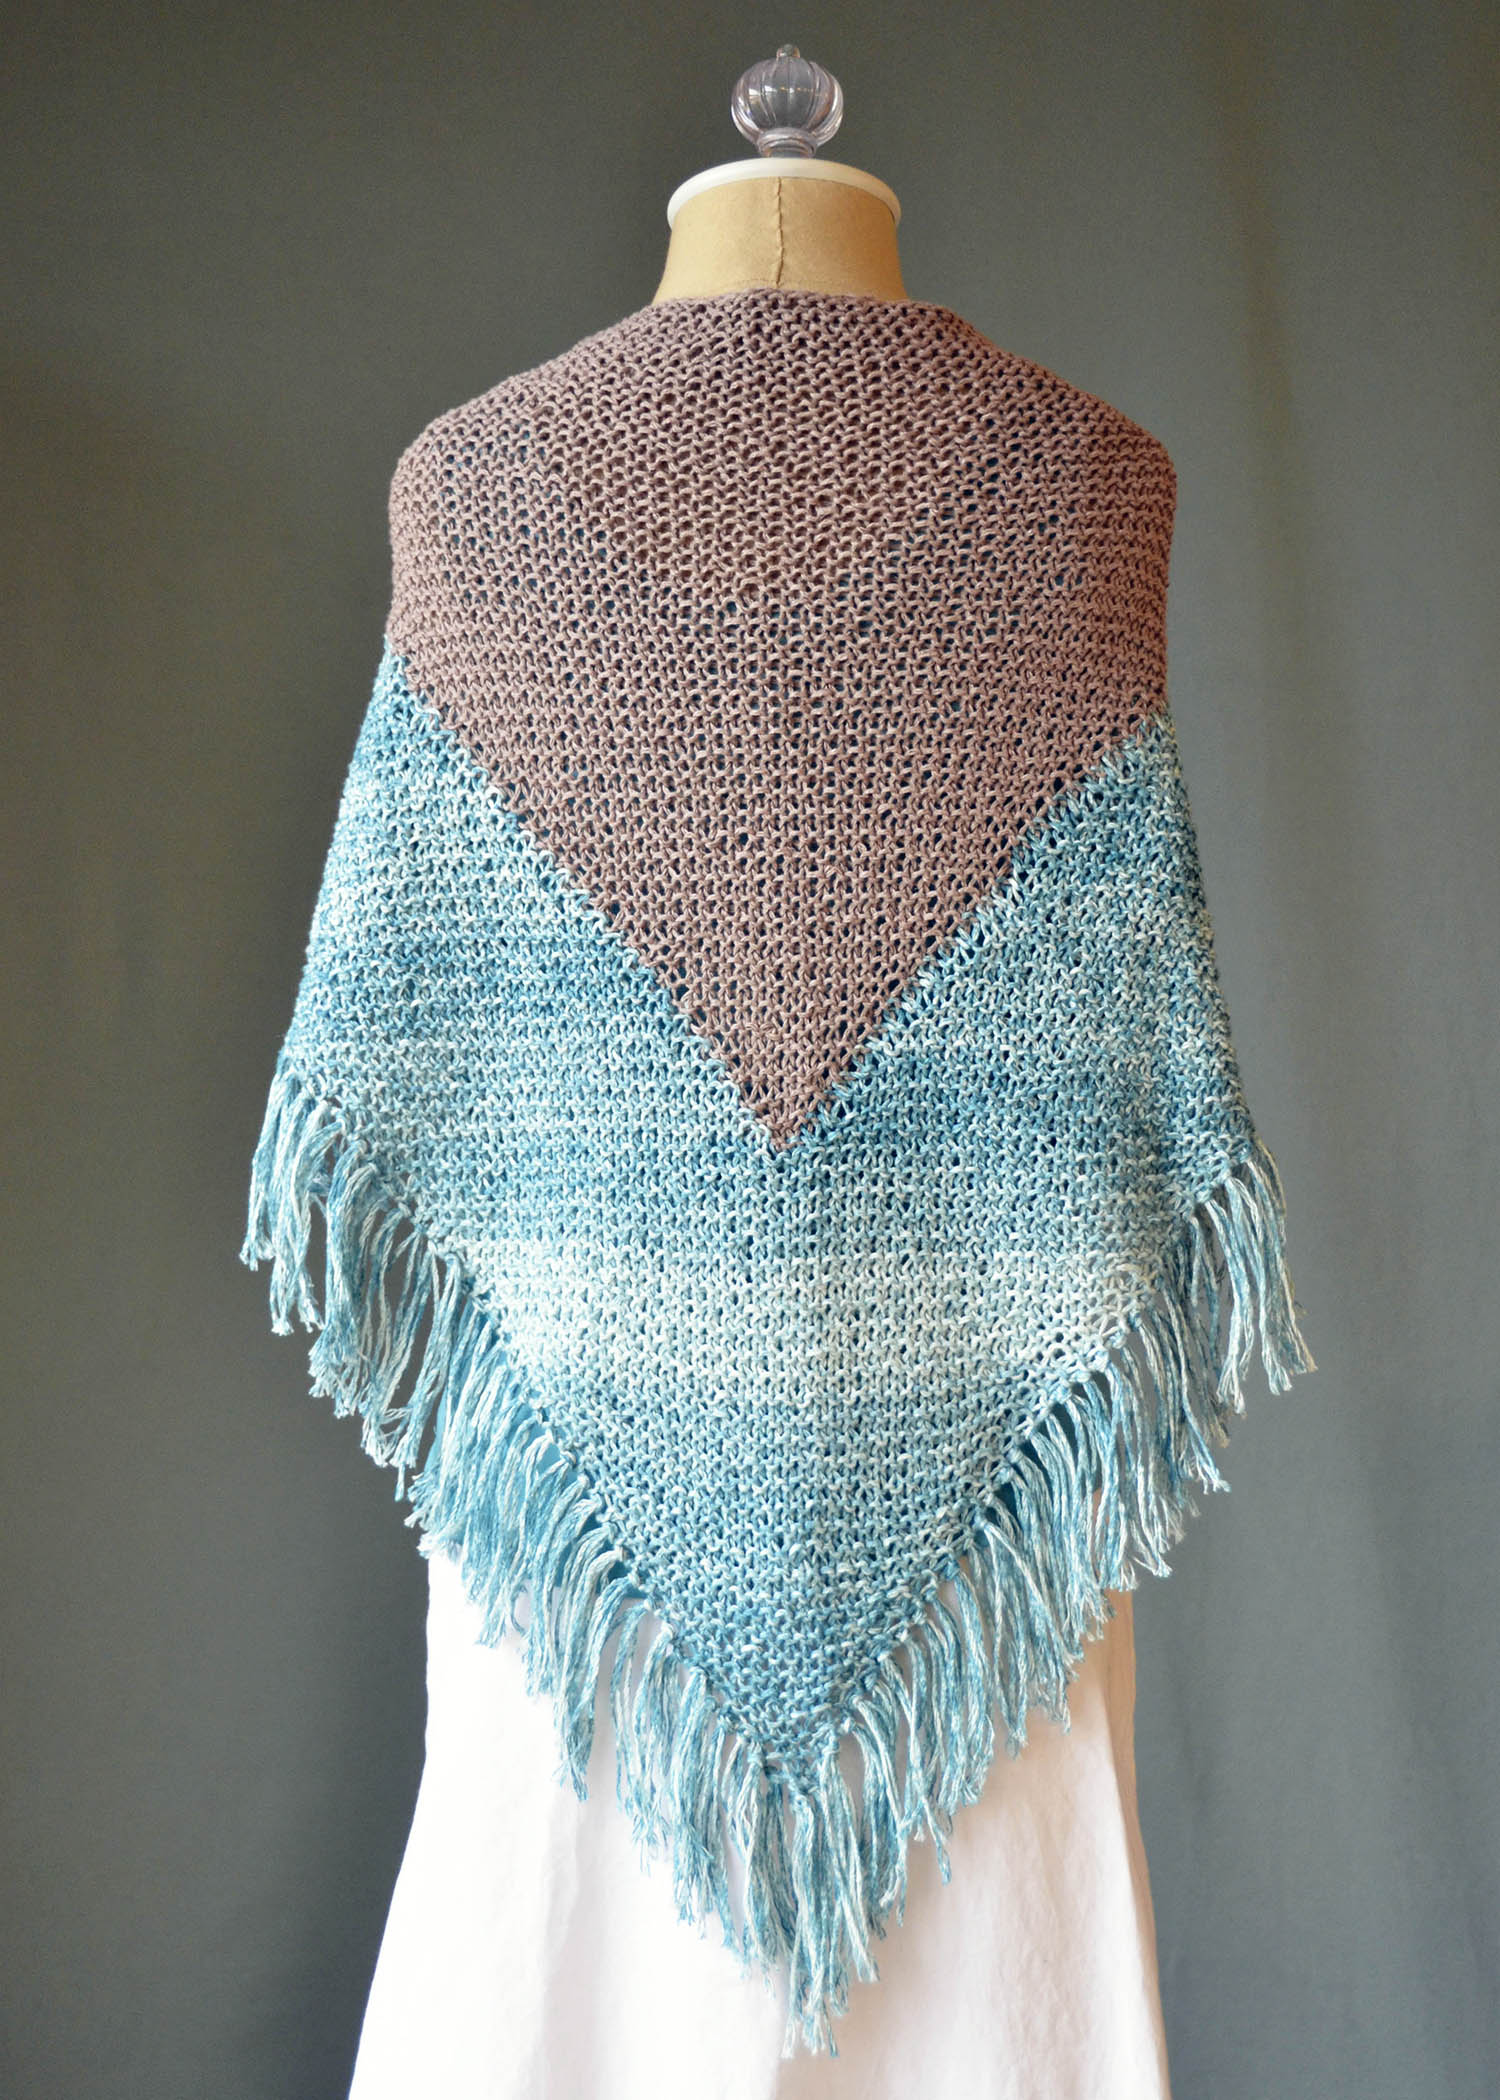 Good Earth Adorn Seabird Shawl back_blog